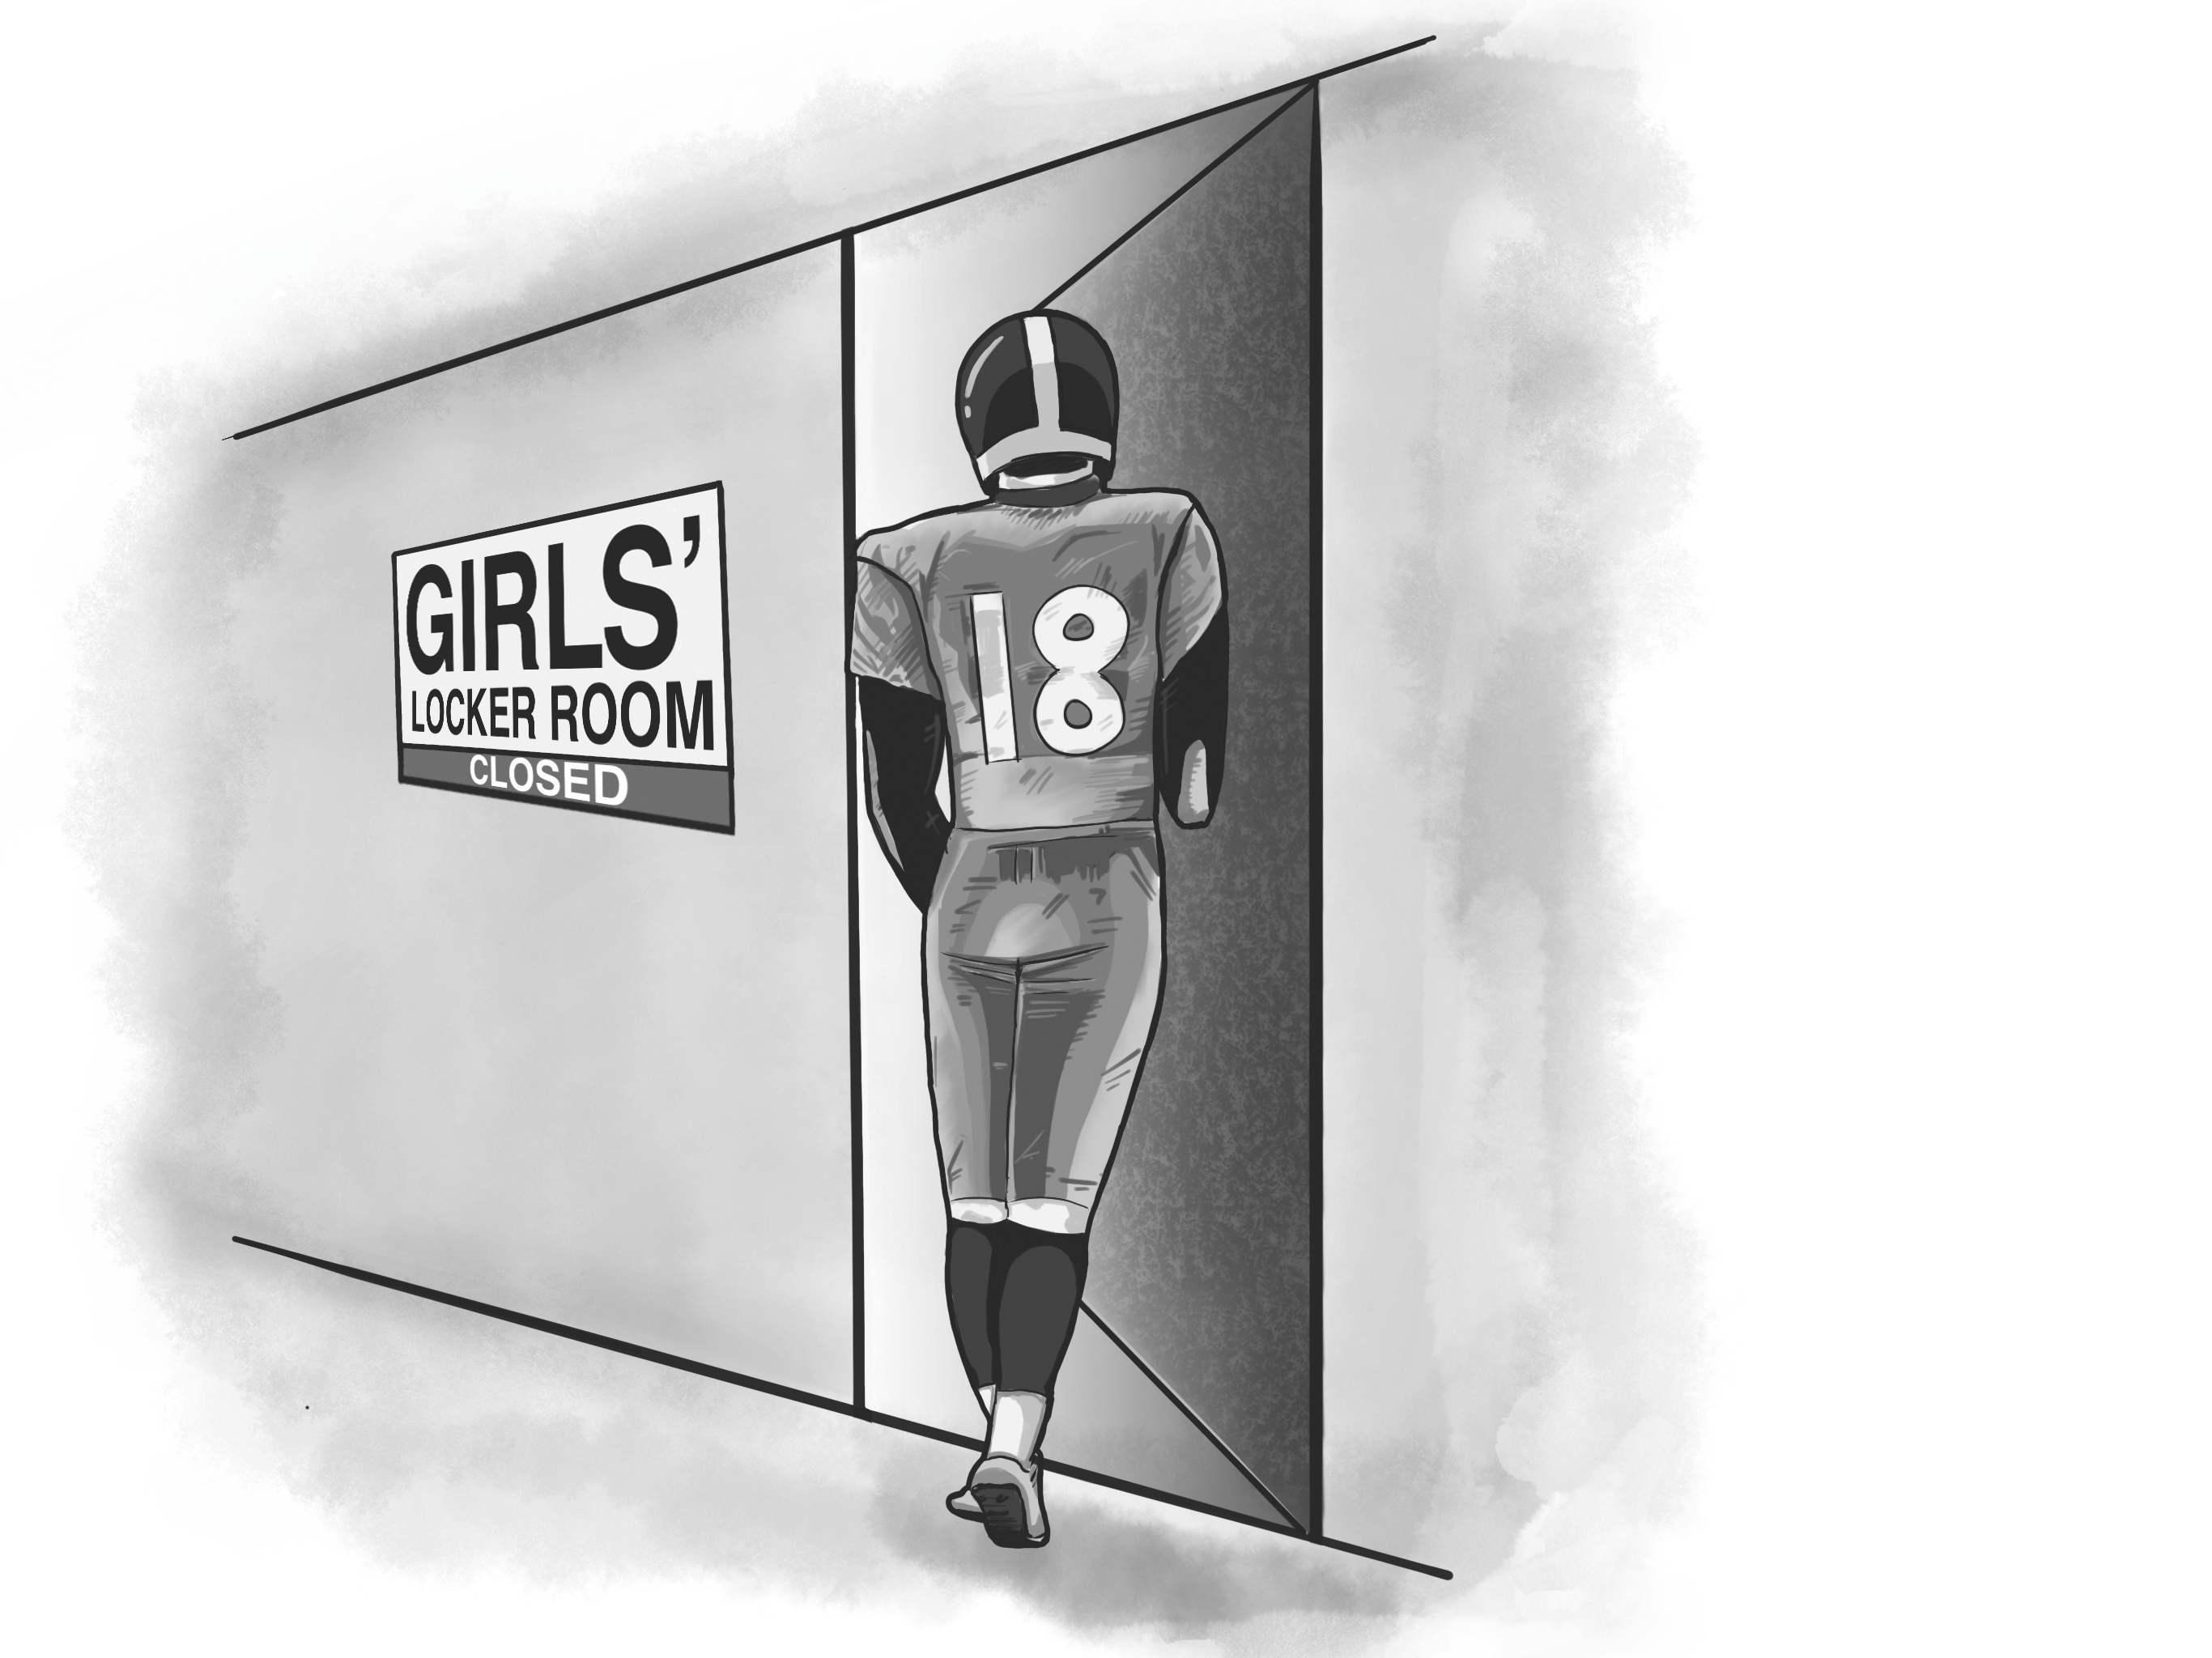 Athletics department, administration respond to complaints about girls' locker room closure